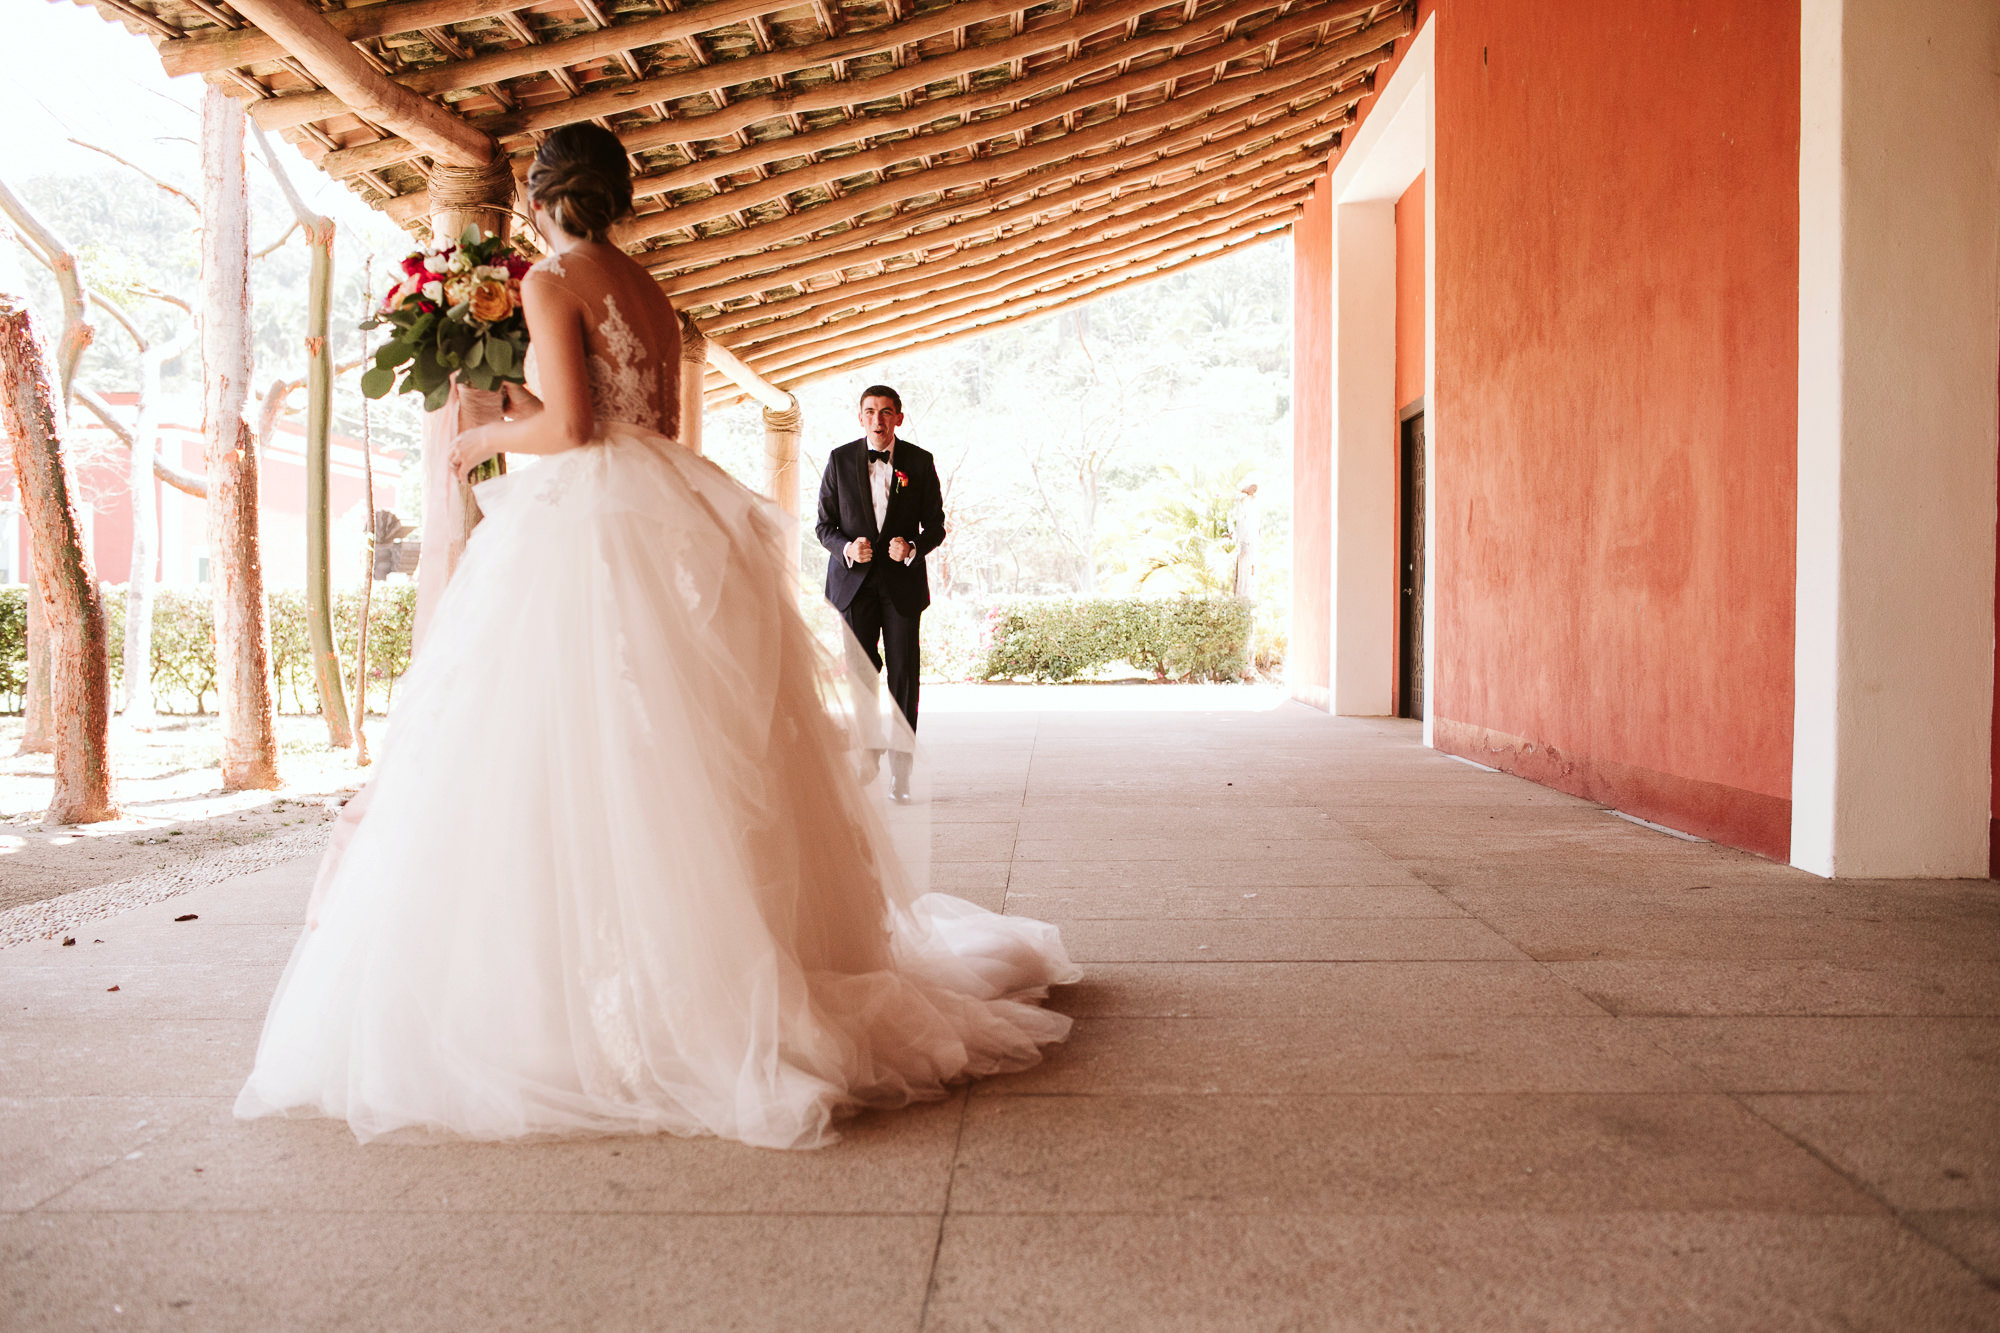 Sayulita-wedding-73.jpg